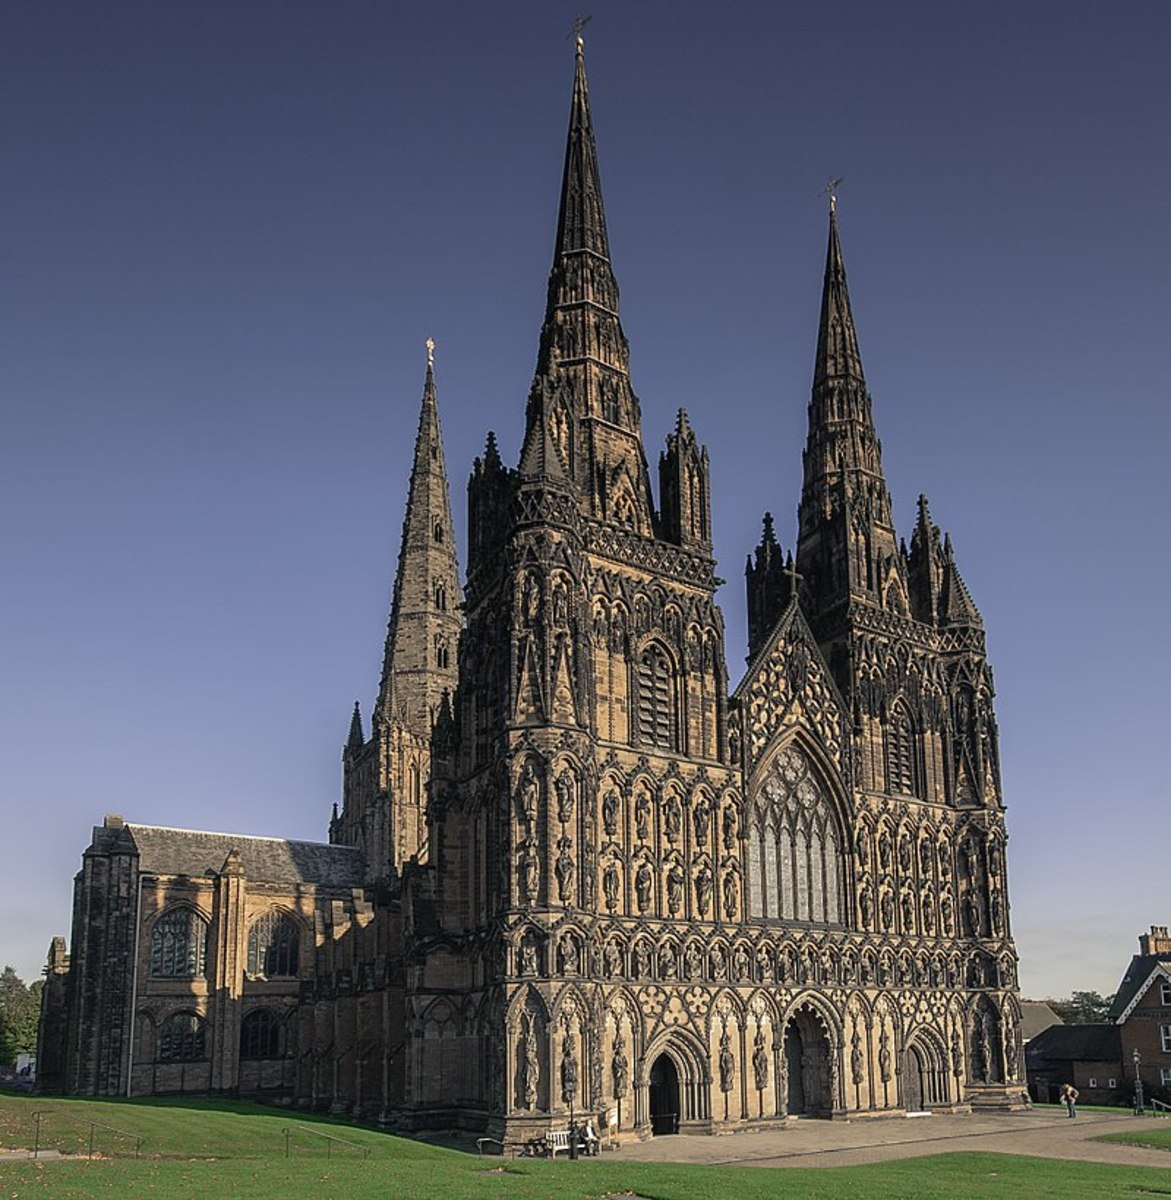 A picture of the west face of Lichfield Cathedral showcasing its three iconic spires. Source: Bs0u10e01 via Wikimedia Commons